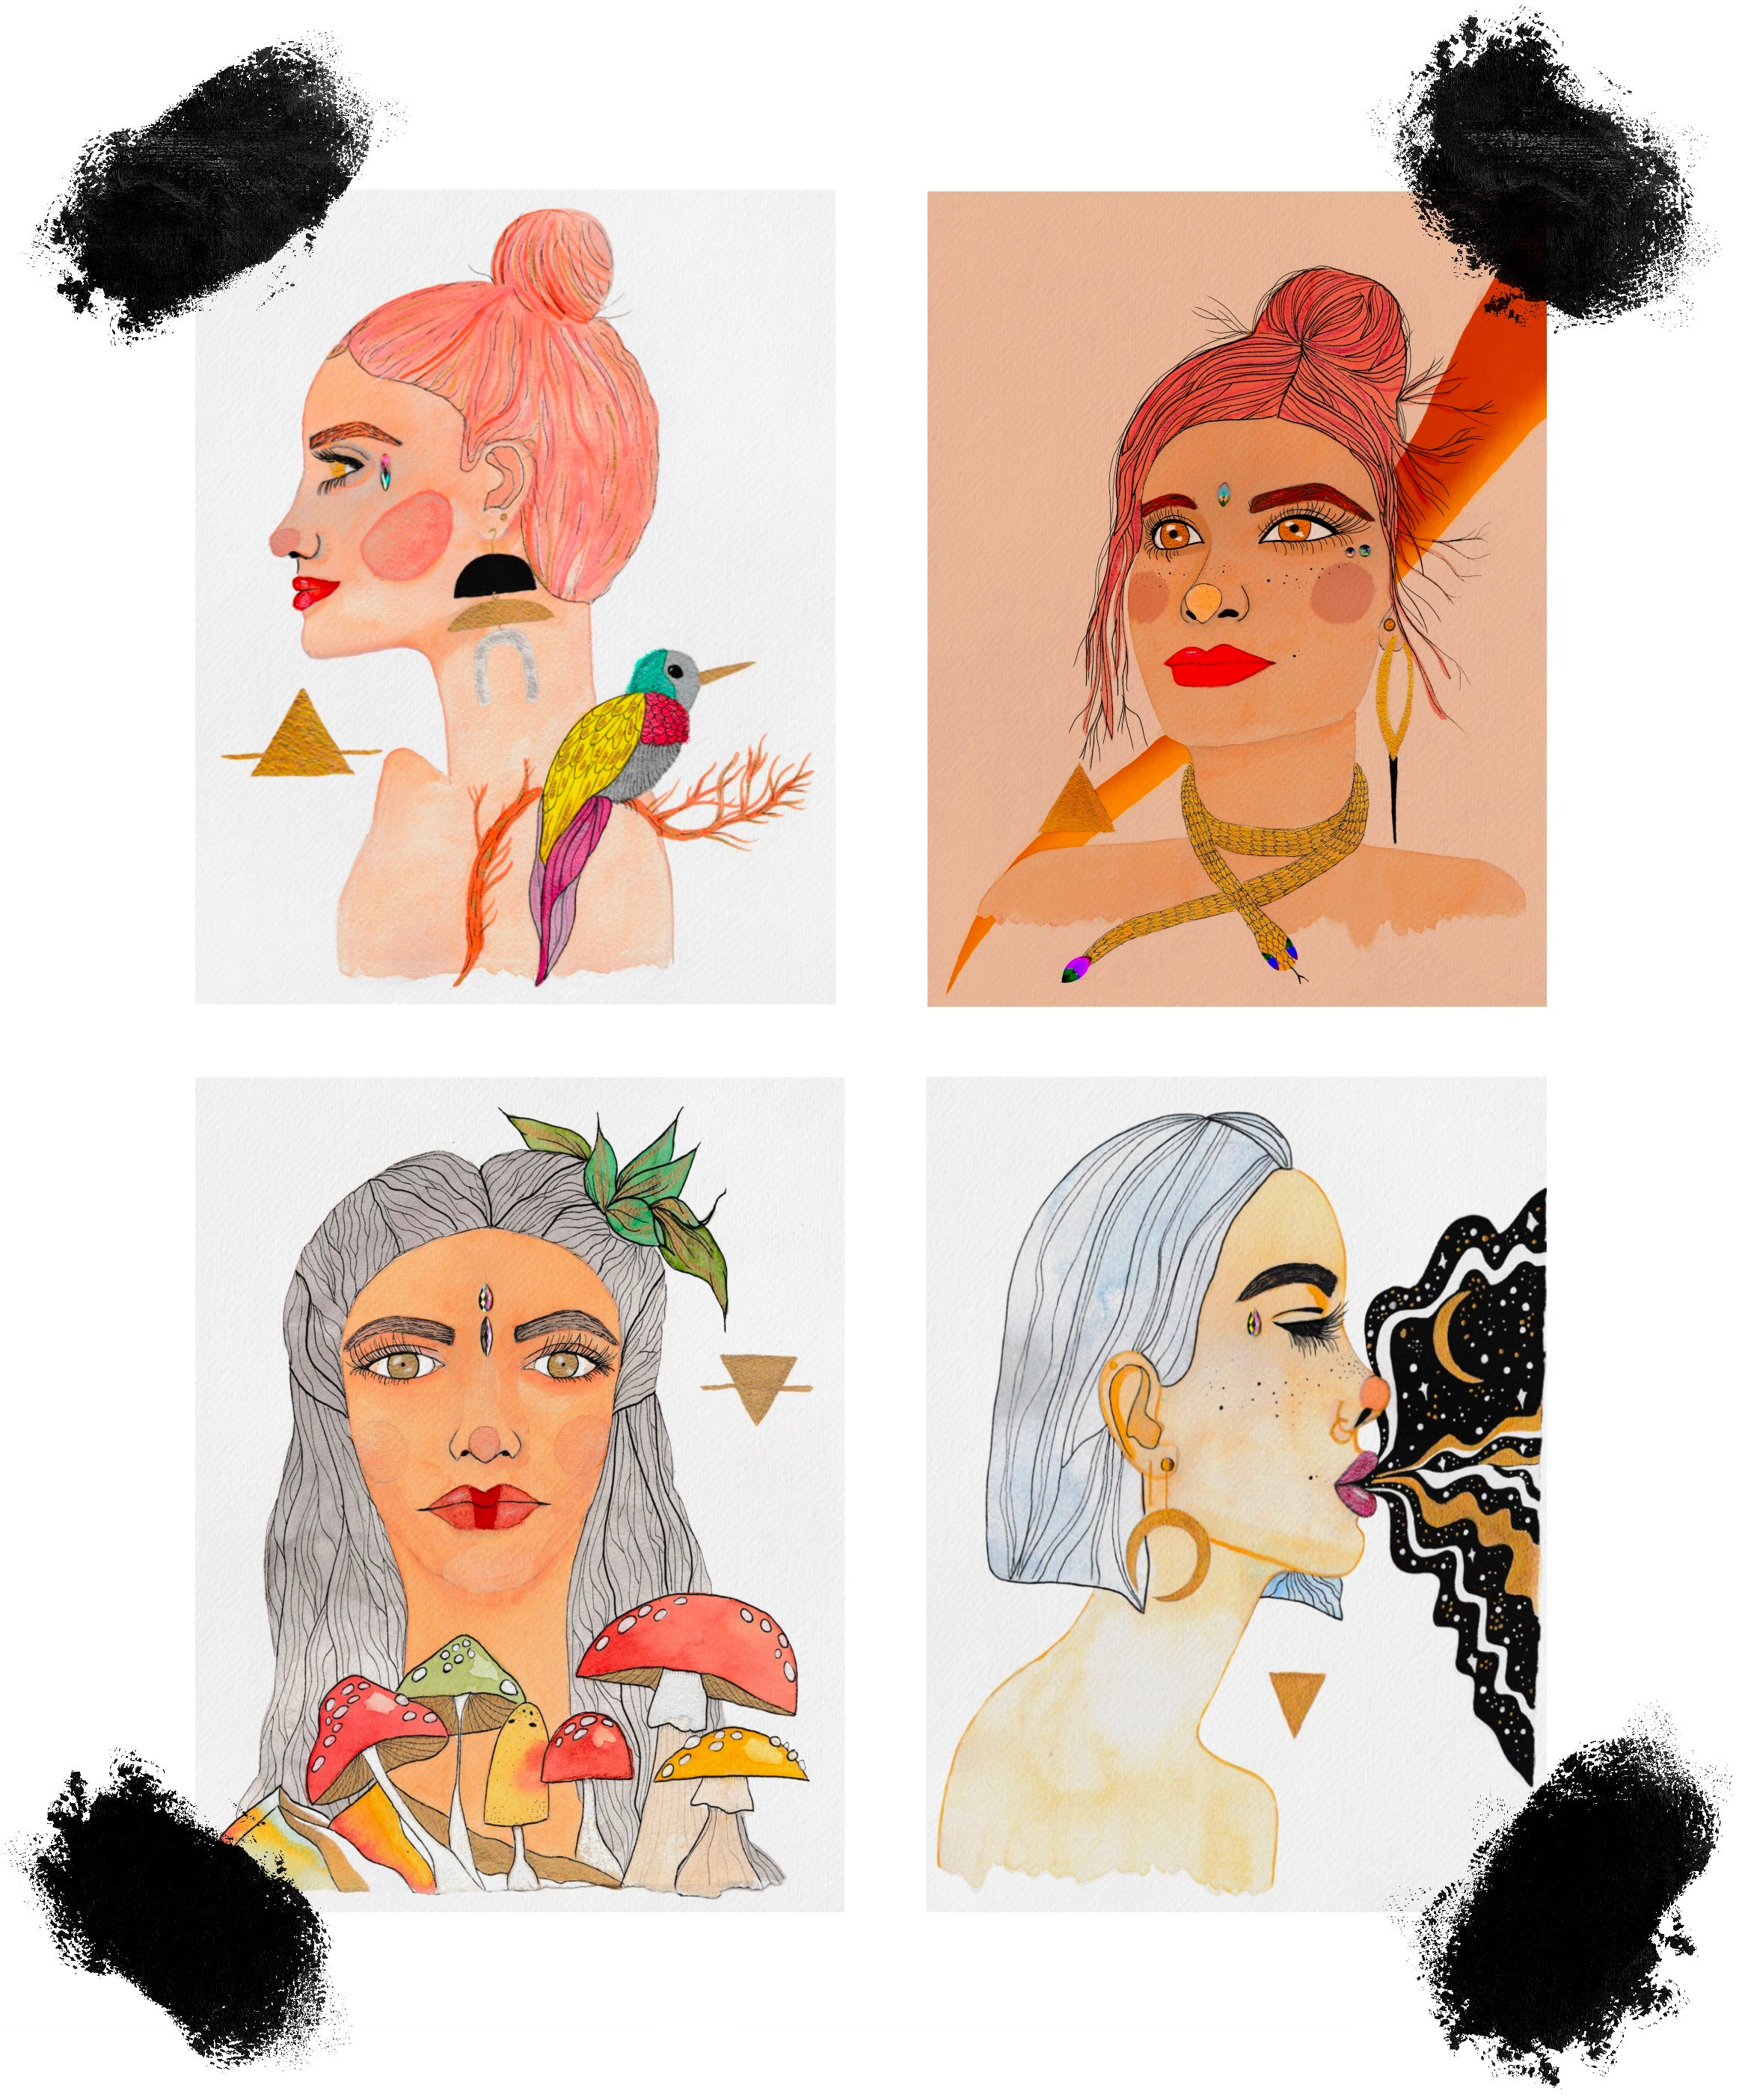 Image of four female portraits: one to symbolize each element (earth, water, fire, air). Embellished with metallic details, face crystals, vibrant colors and watercolor paper texture.